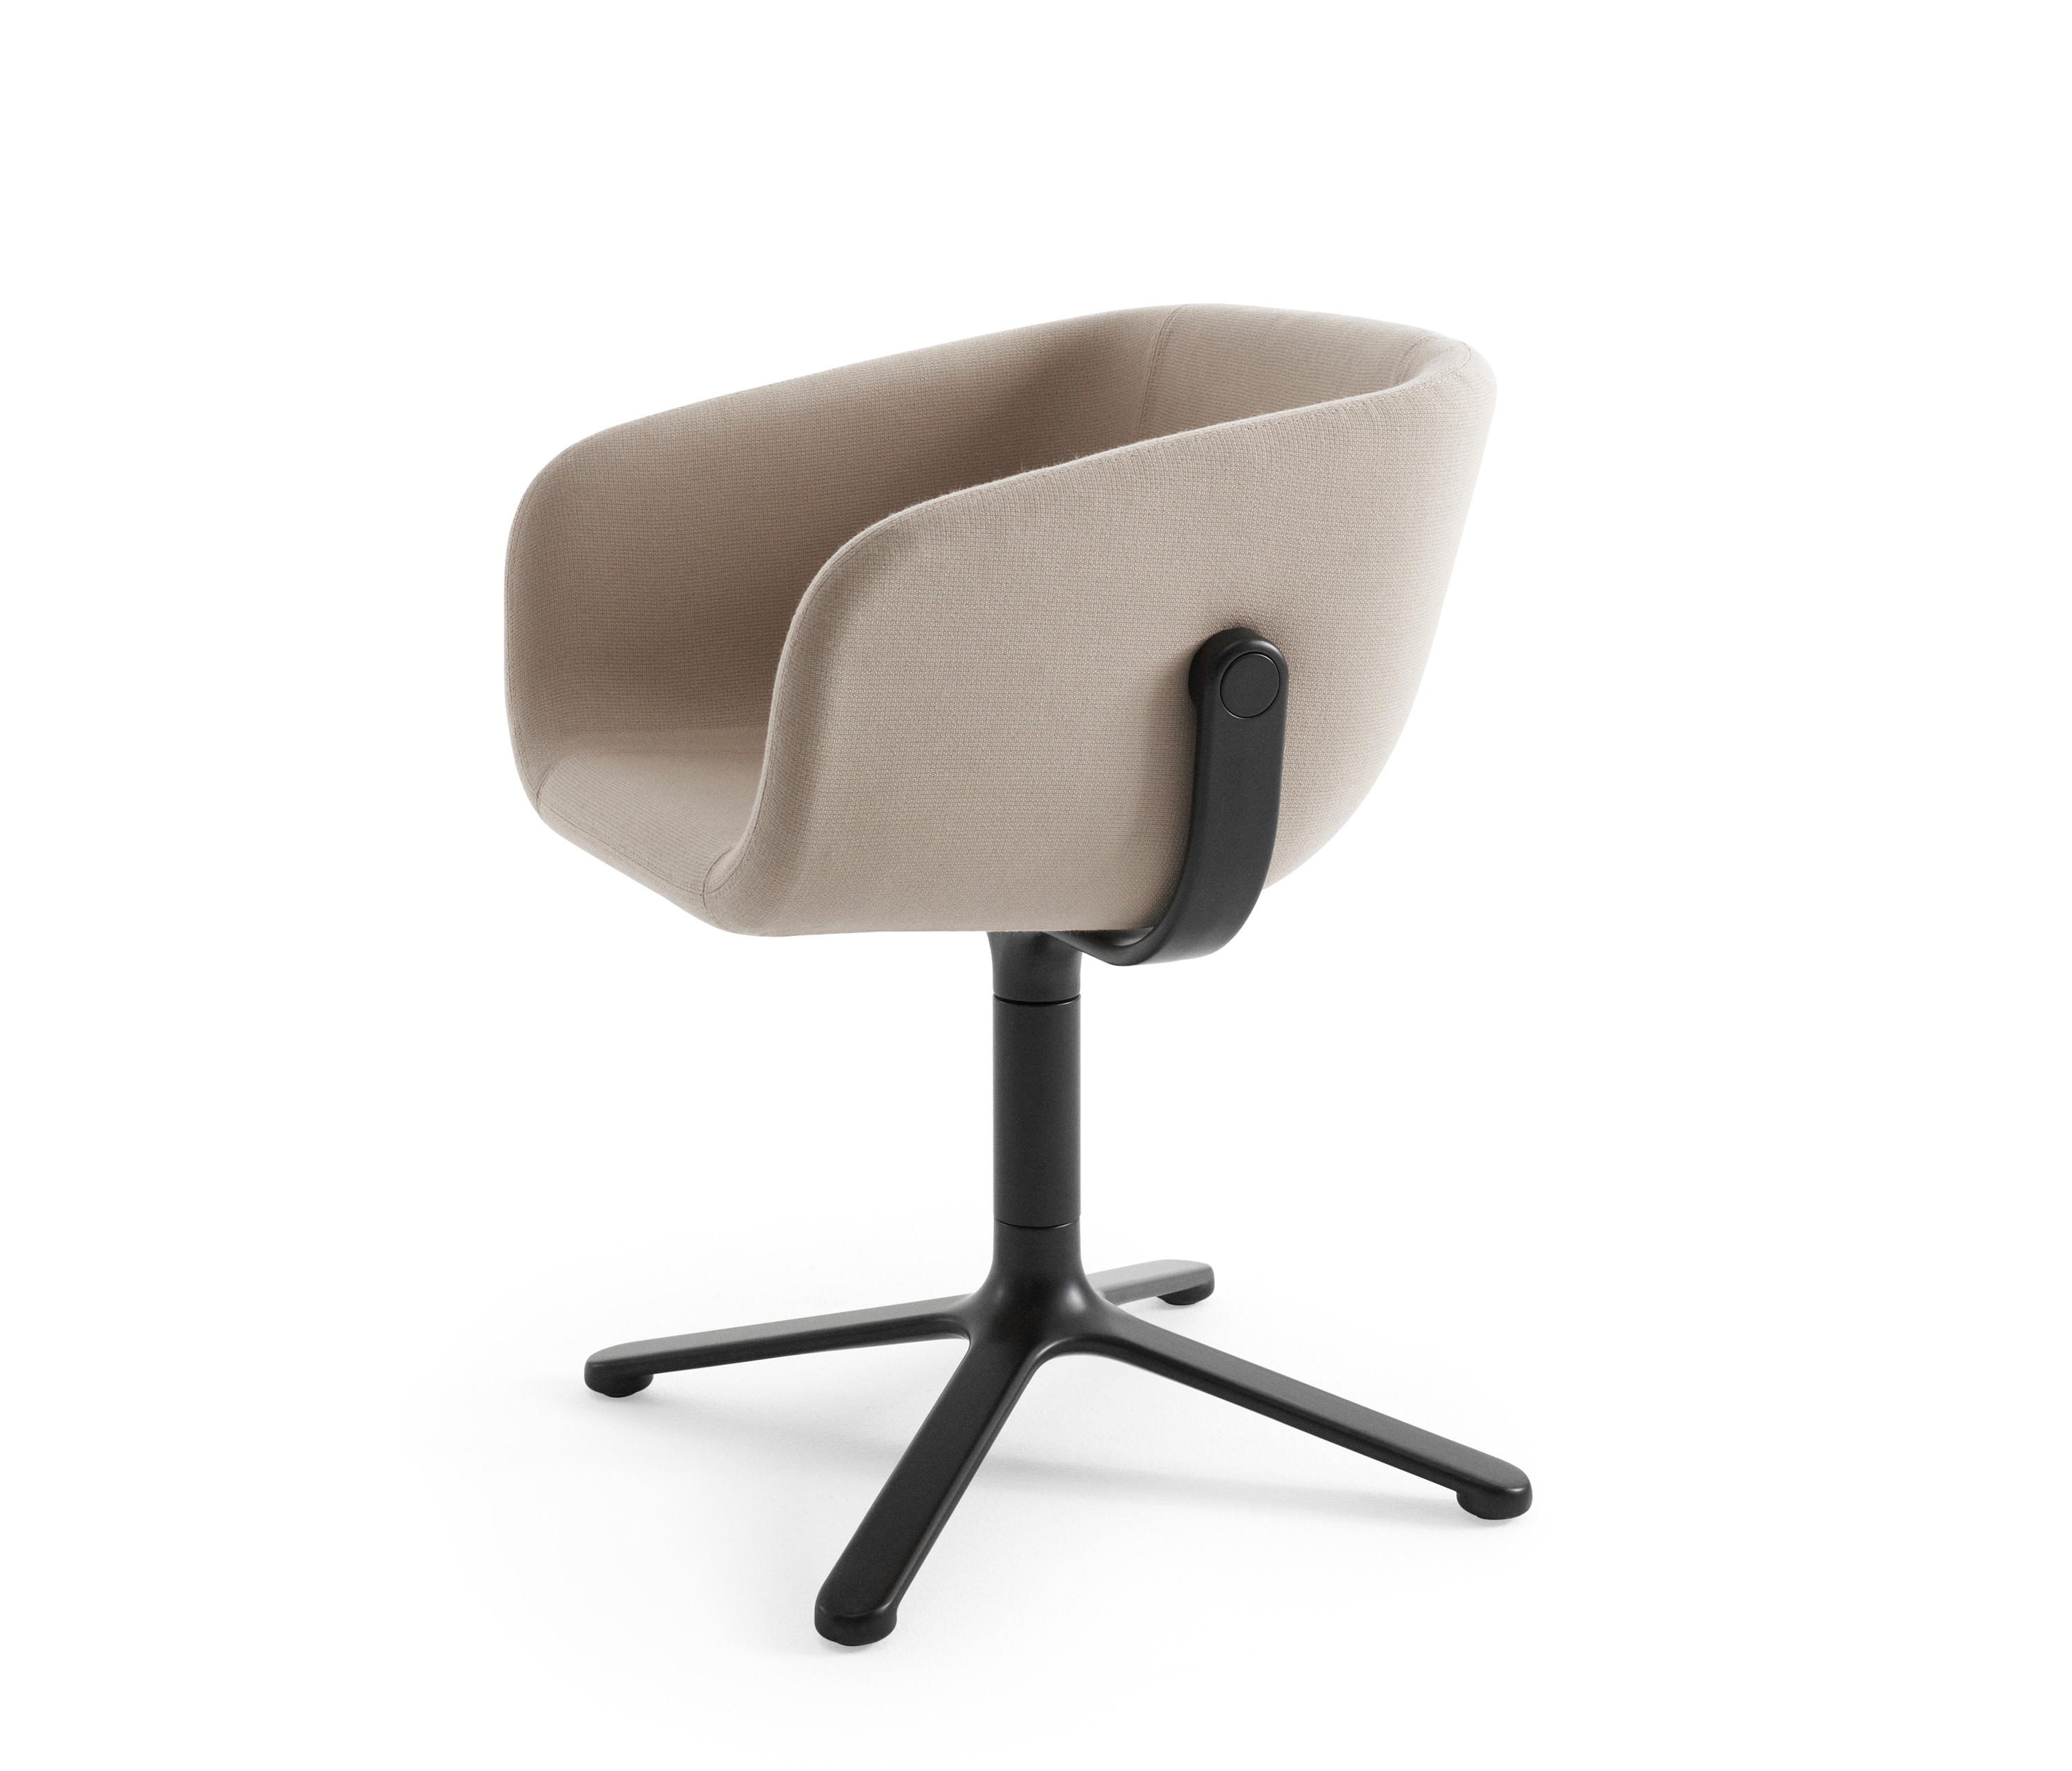 Merveilleux Scoop Chair By +Halle | Chairs